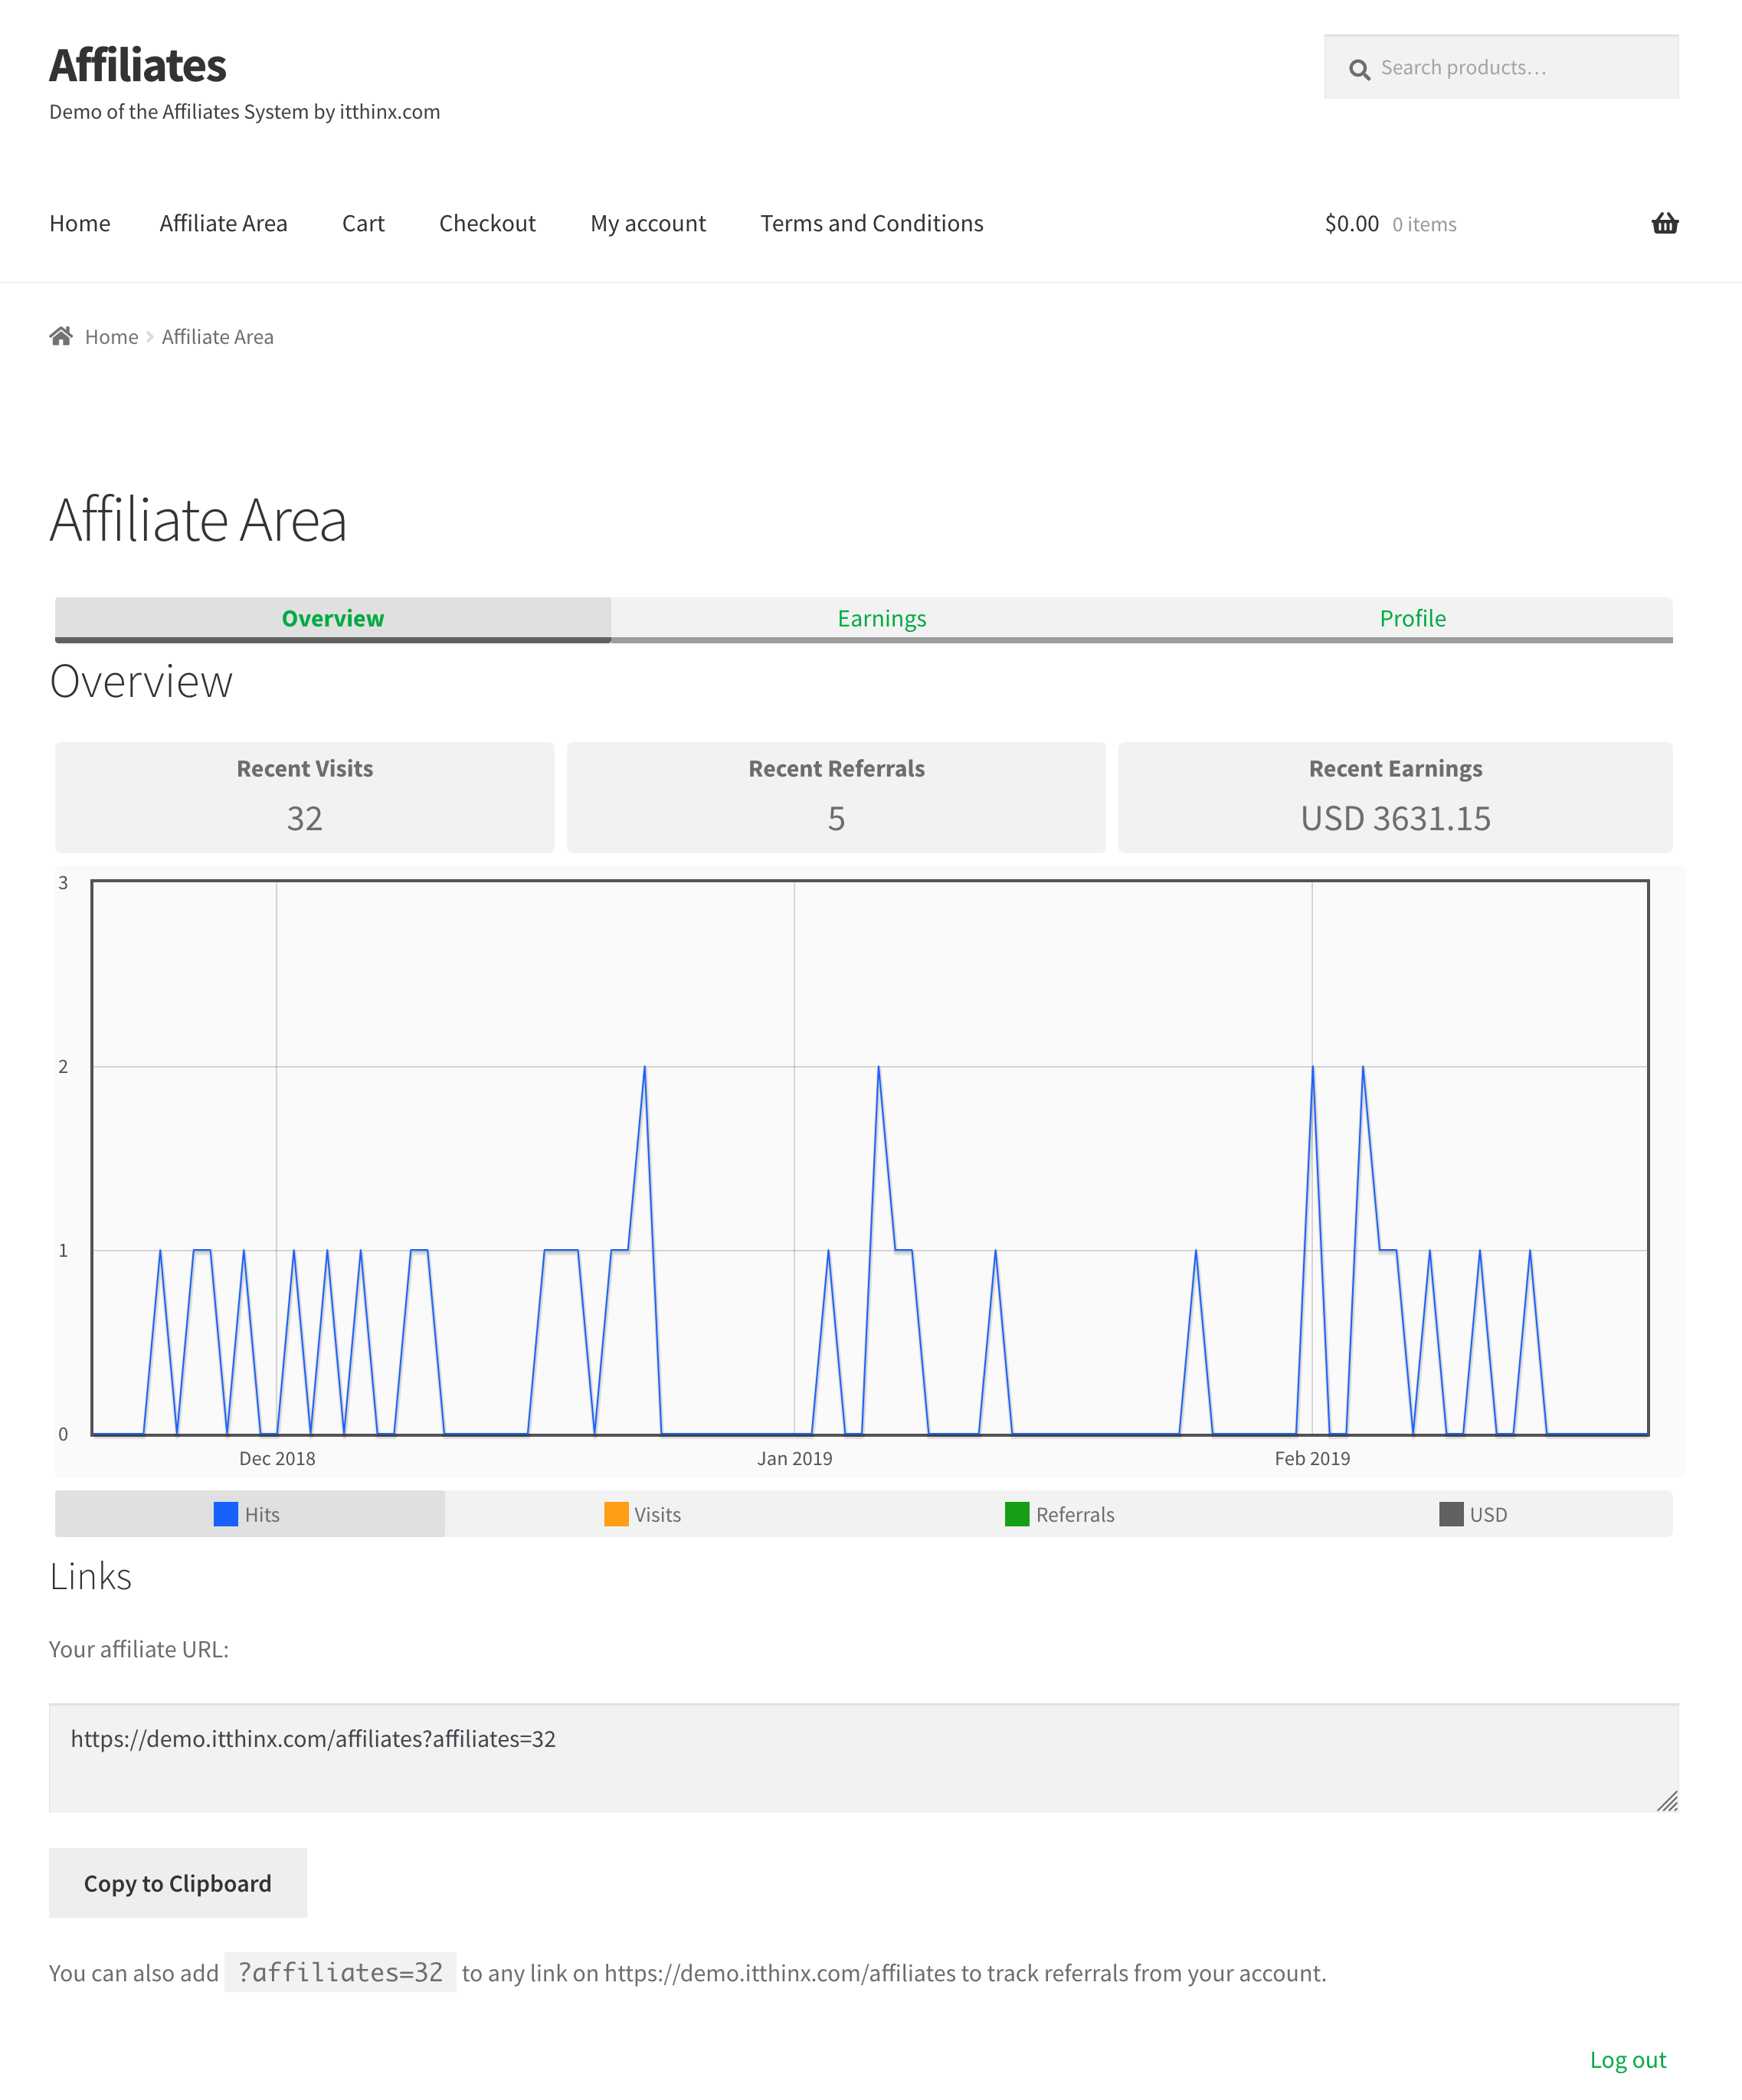 Affiliates Dashboard Overview - Front end affiliate dashboard section showing graphical statistics on clicks and earnings and the affiliate link tool.